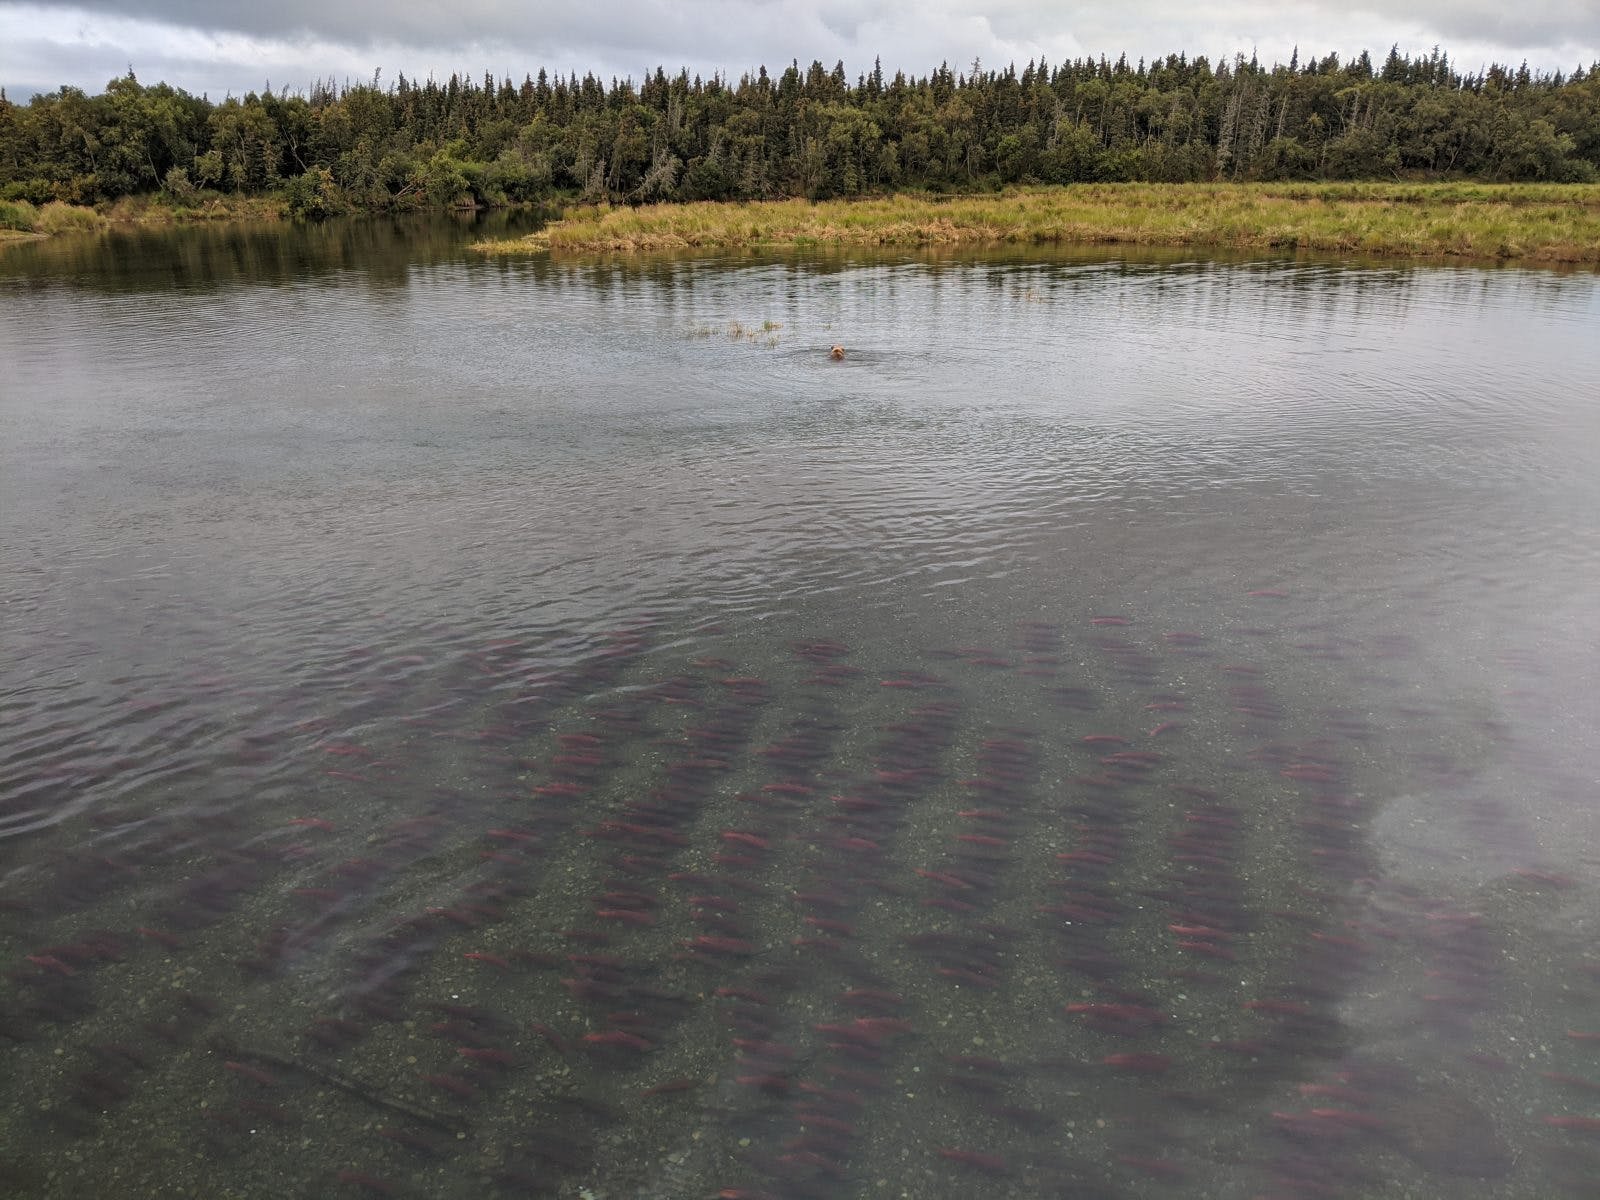 A brown bear fishes for salmon in the distance in Katmai. Photo by: Sam Carter